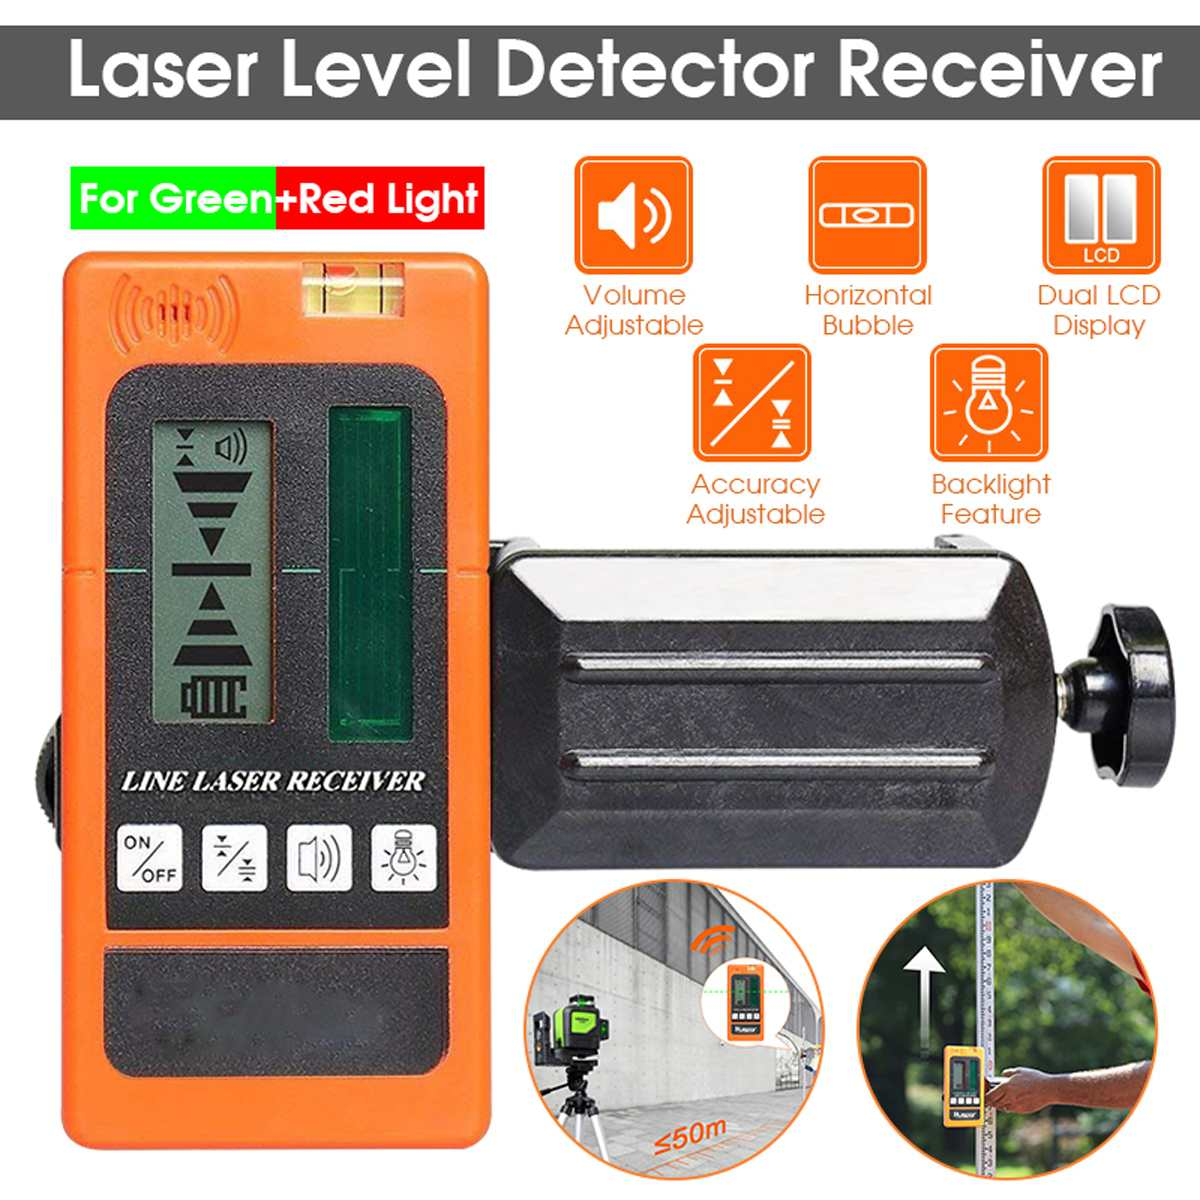 Laser Level Detector Receiver for Levelsure for Huepar Electronic Leveling 2/5/12 Lines Vertical Horizontal for Red/Green Light